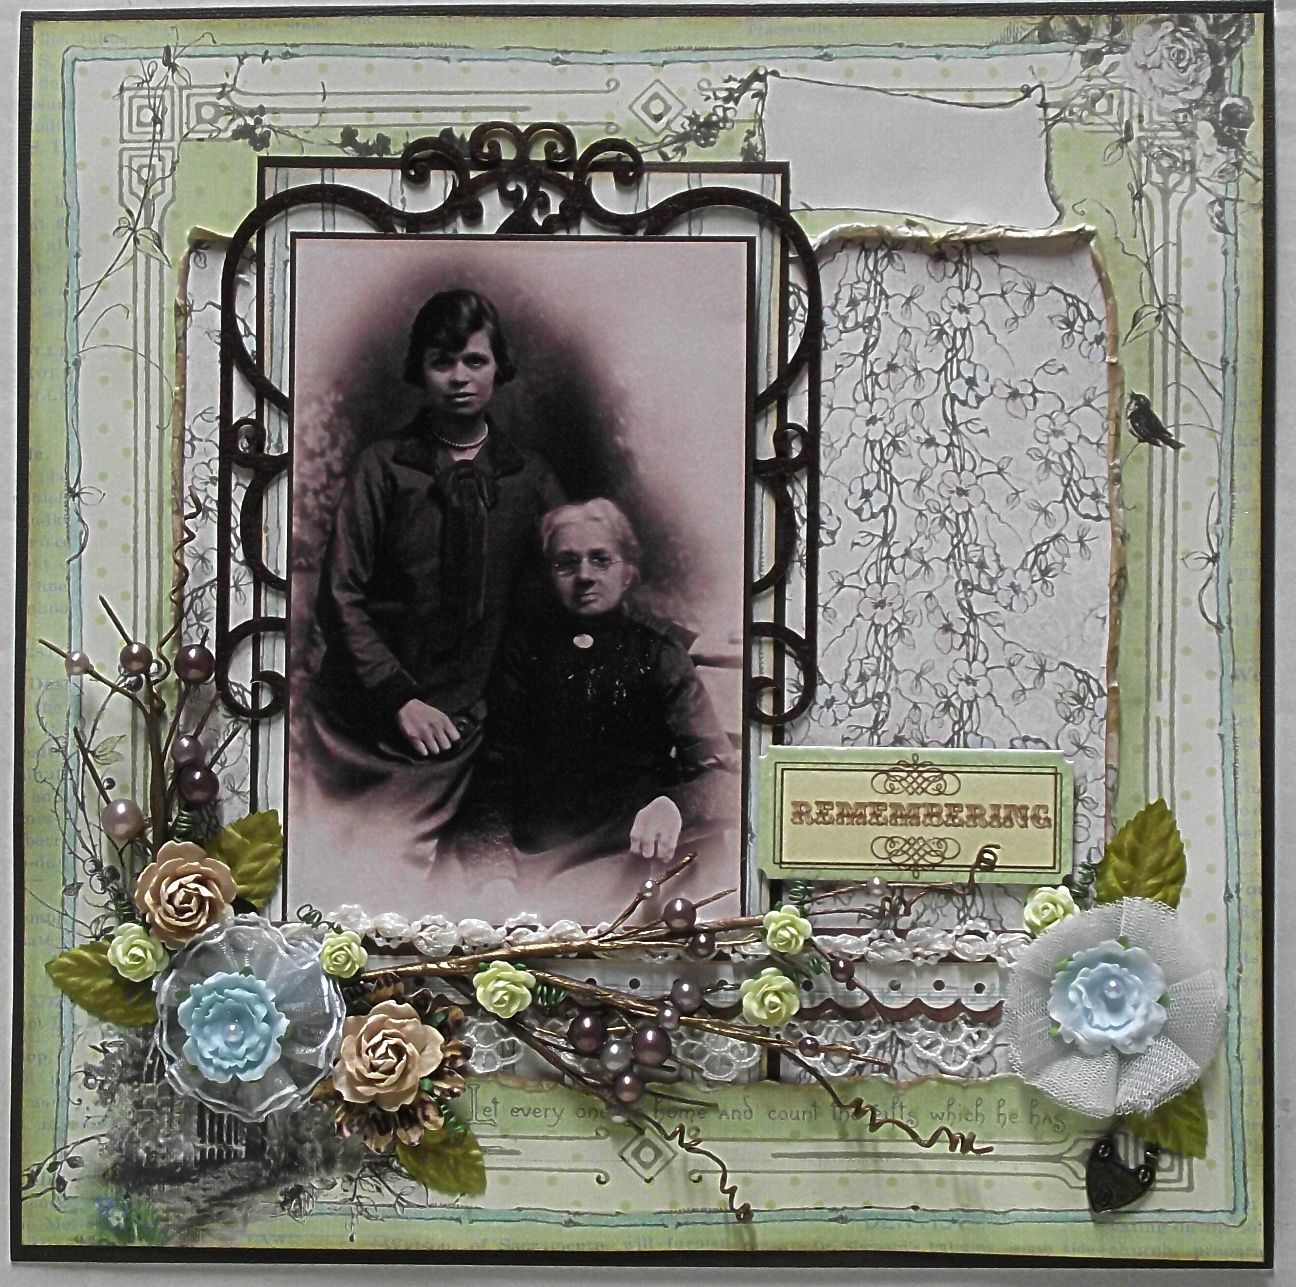 Remembering ~ Elegant heritage portrait page. Love the framing and floral spray!